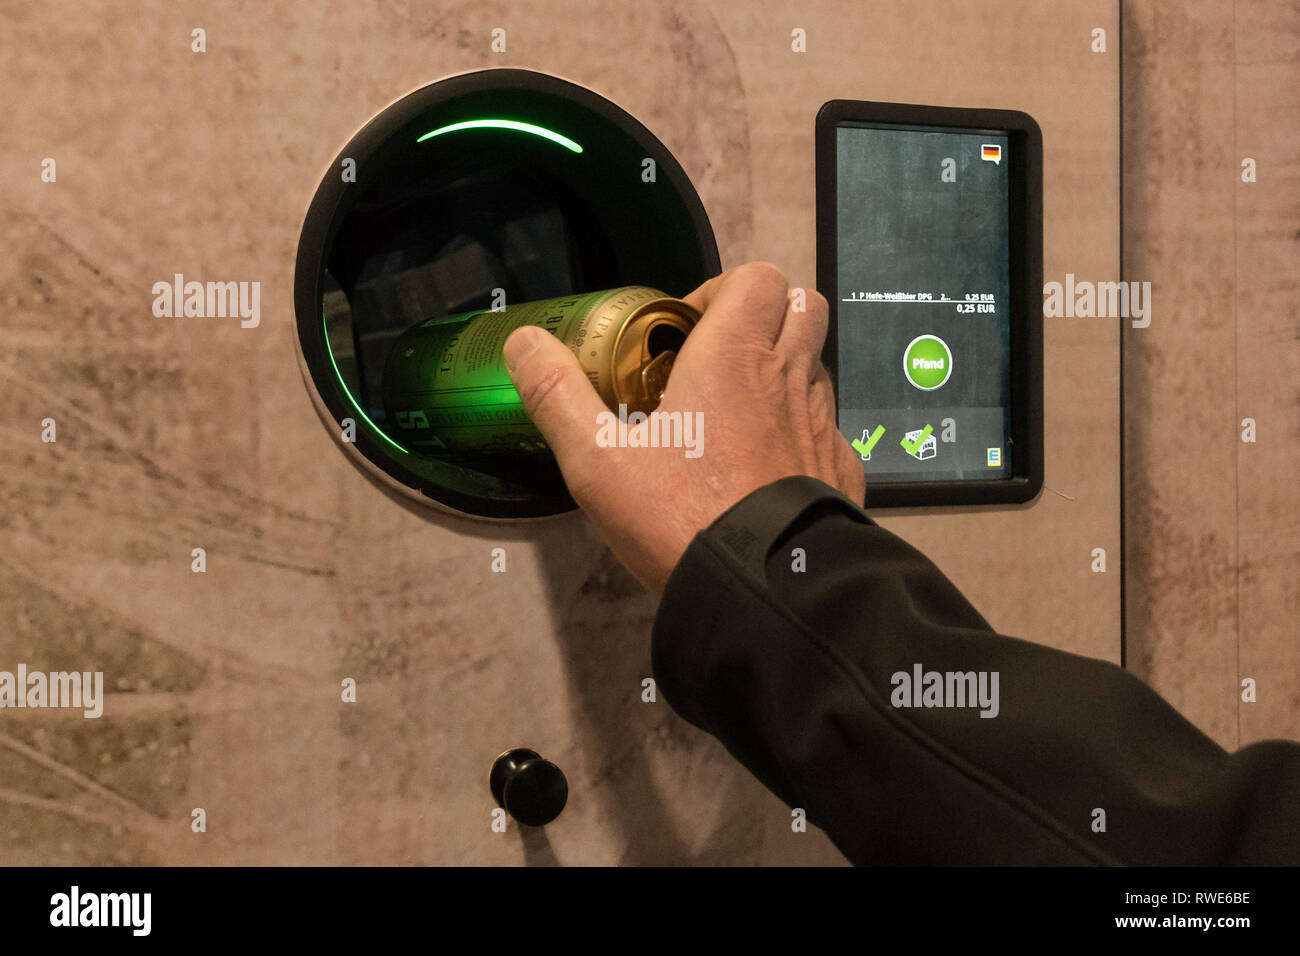 Pfand System in Germany - man putting a drinks can into a reverse vending machine pfandautomat to receive a credit refund for the deposit paid - Stock Image